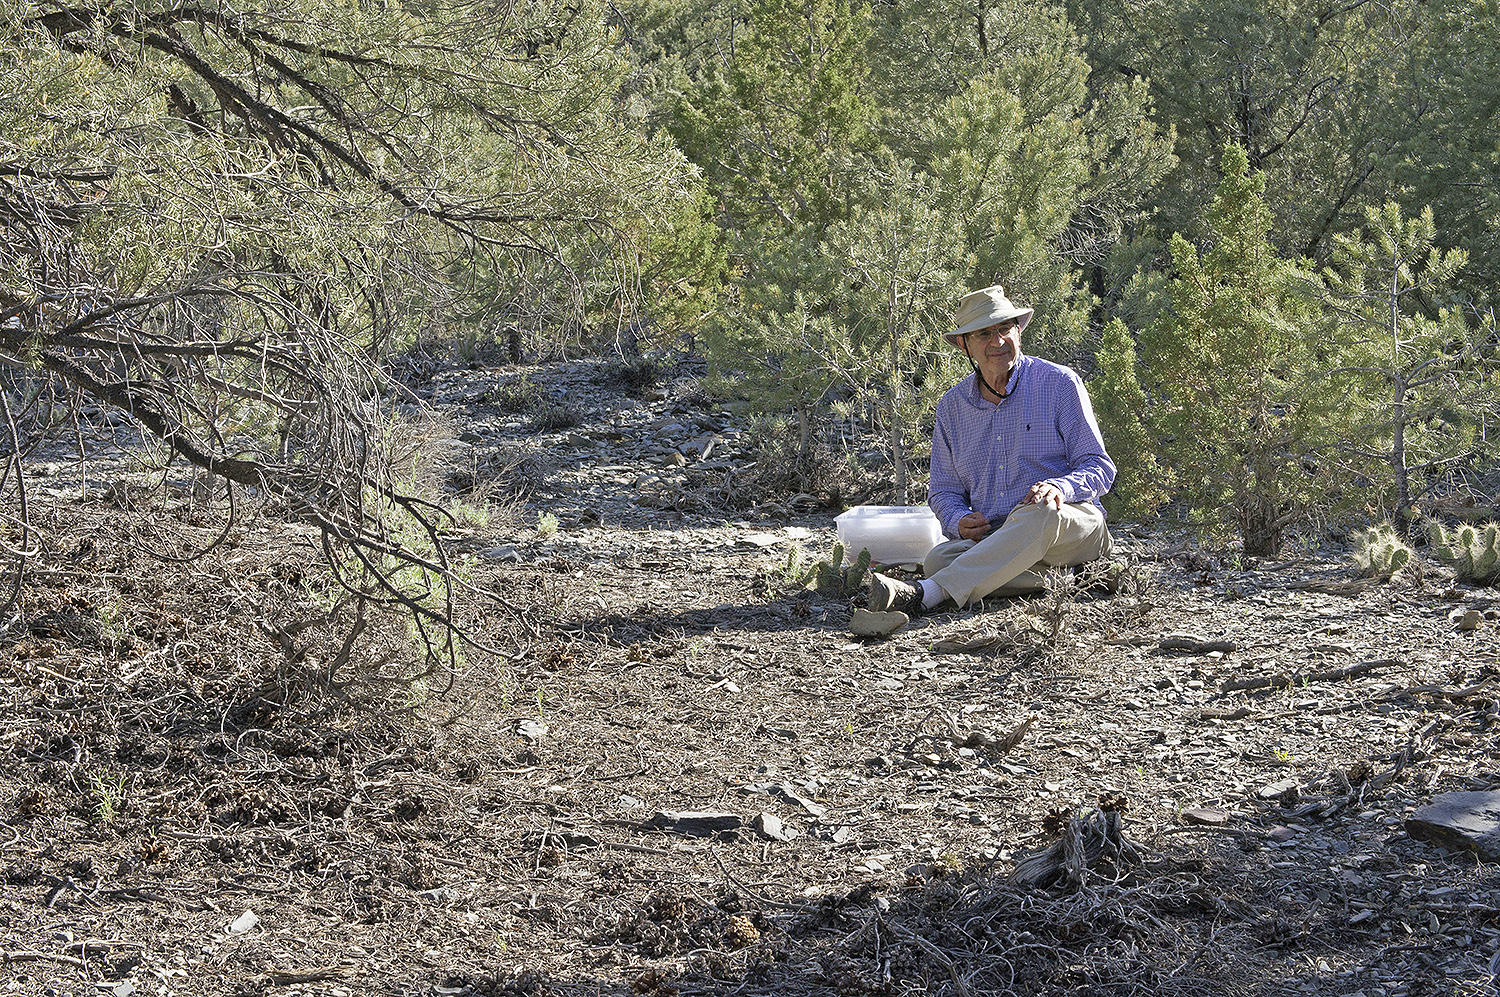 Fred Cohan samples the rhizospheres of Opuntia, or prickly pear cactus, at about 7,000 feet.